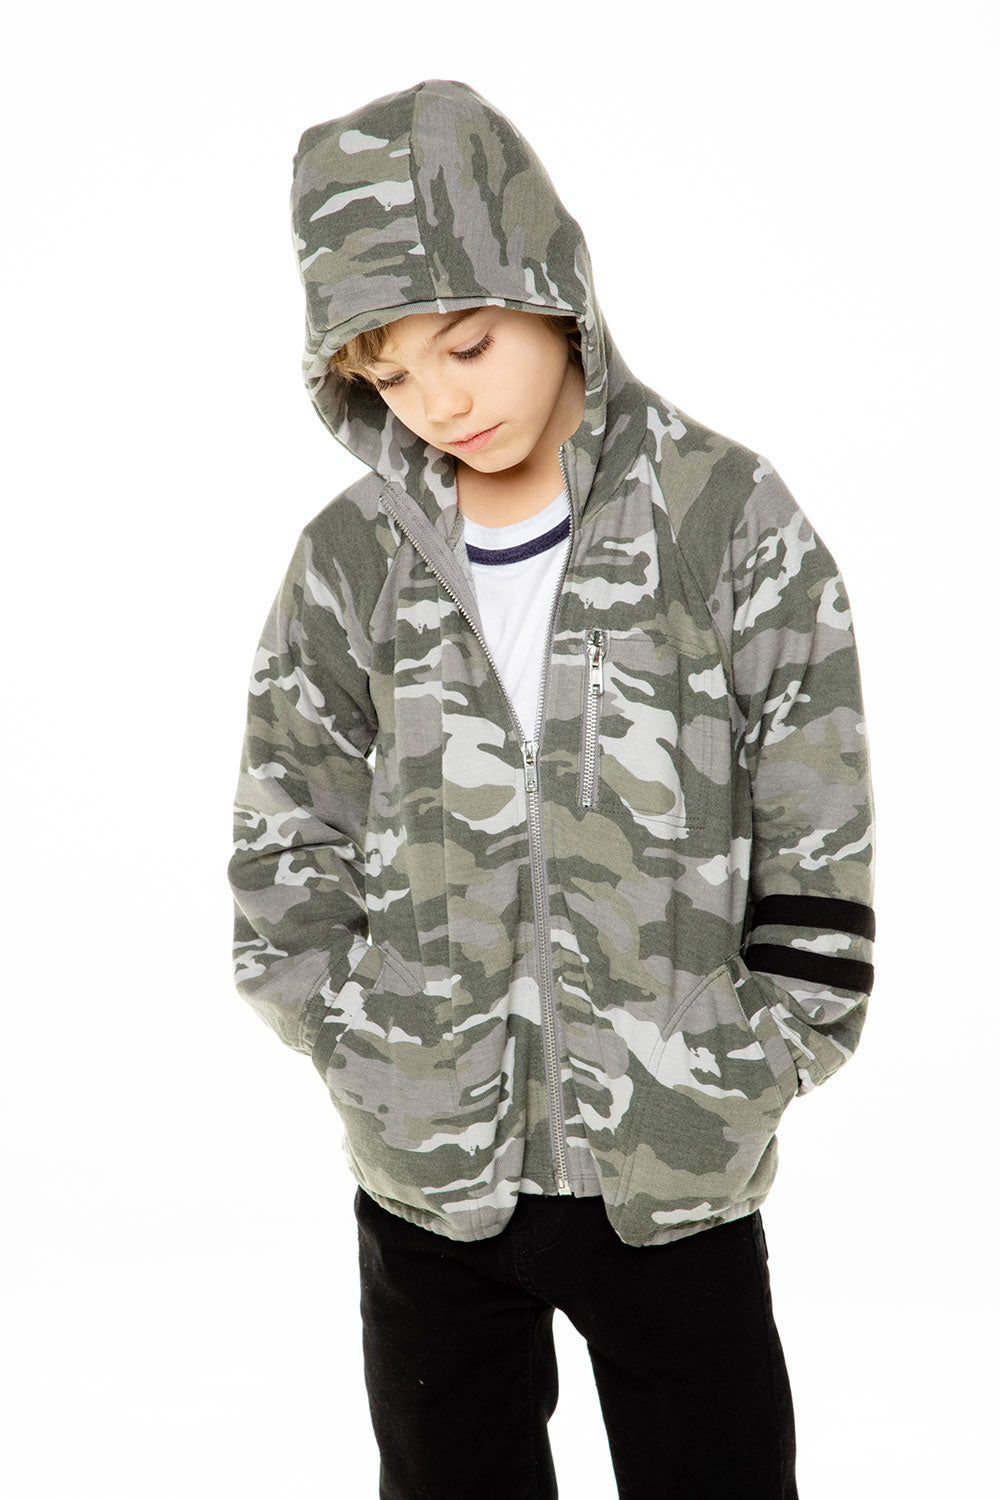 Boys Love Knit Long Sleeve Zip Up Hoodie with Strappings BOYS chaserbrand4.myshopify.com